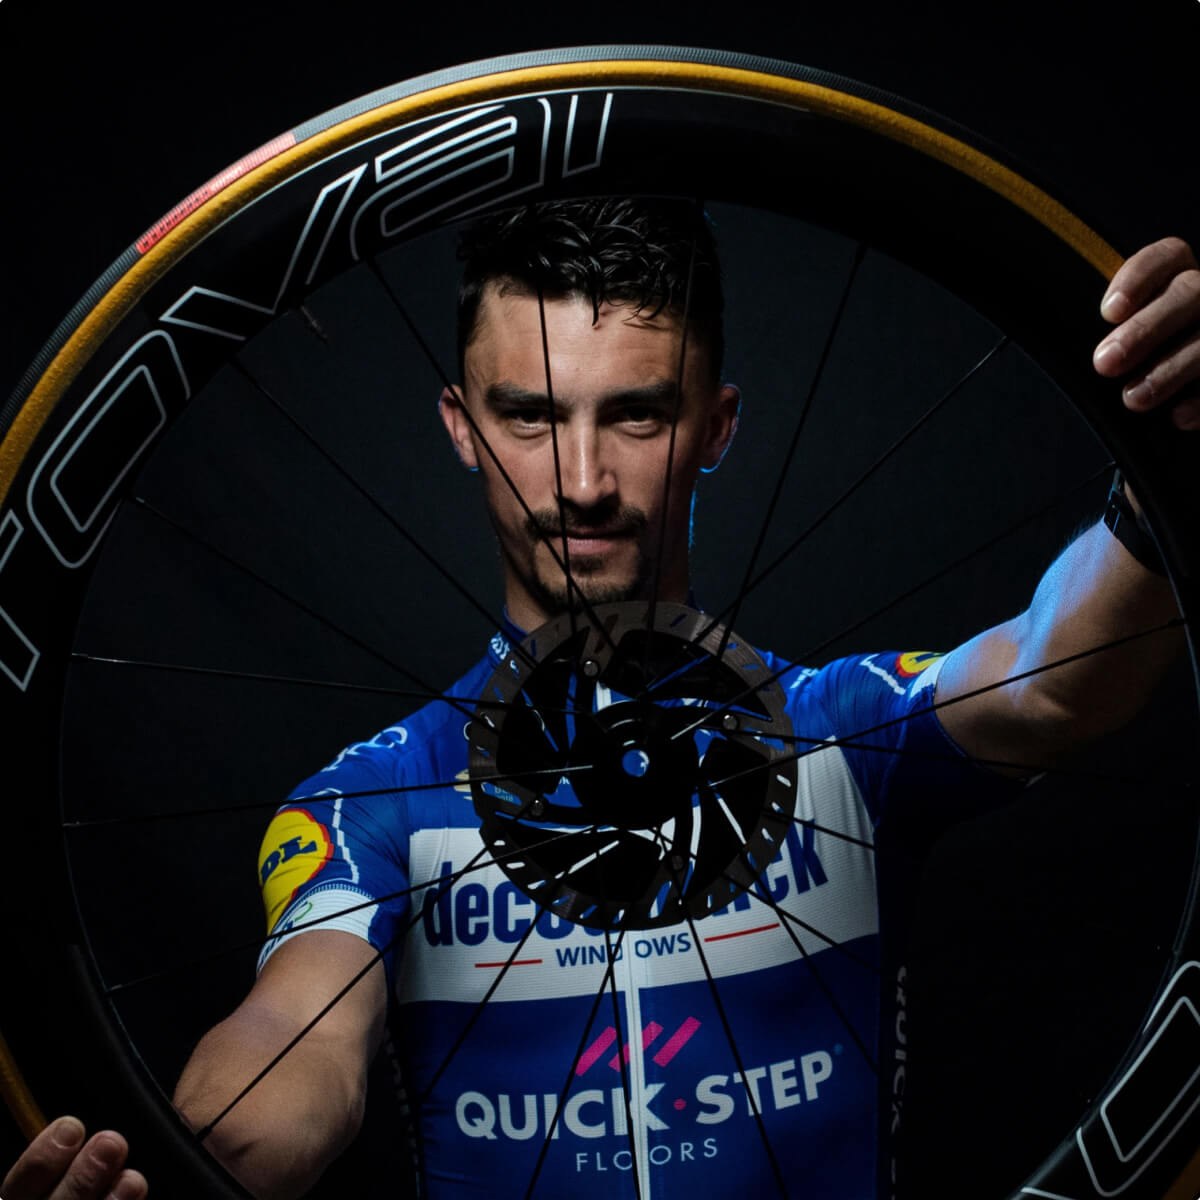 A cyclist holds a Roval wheel.